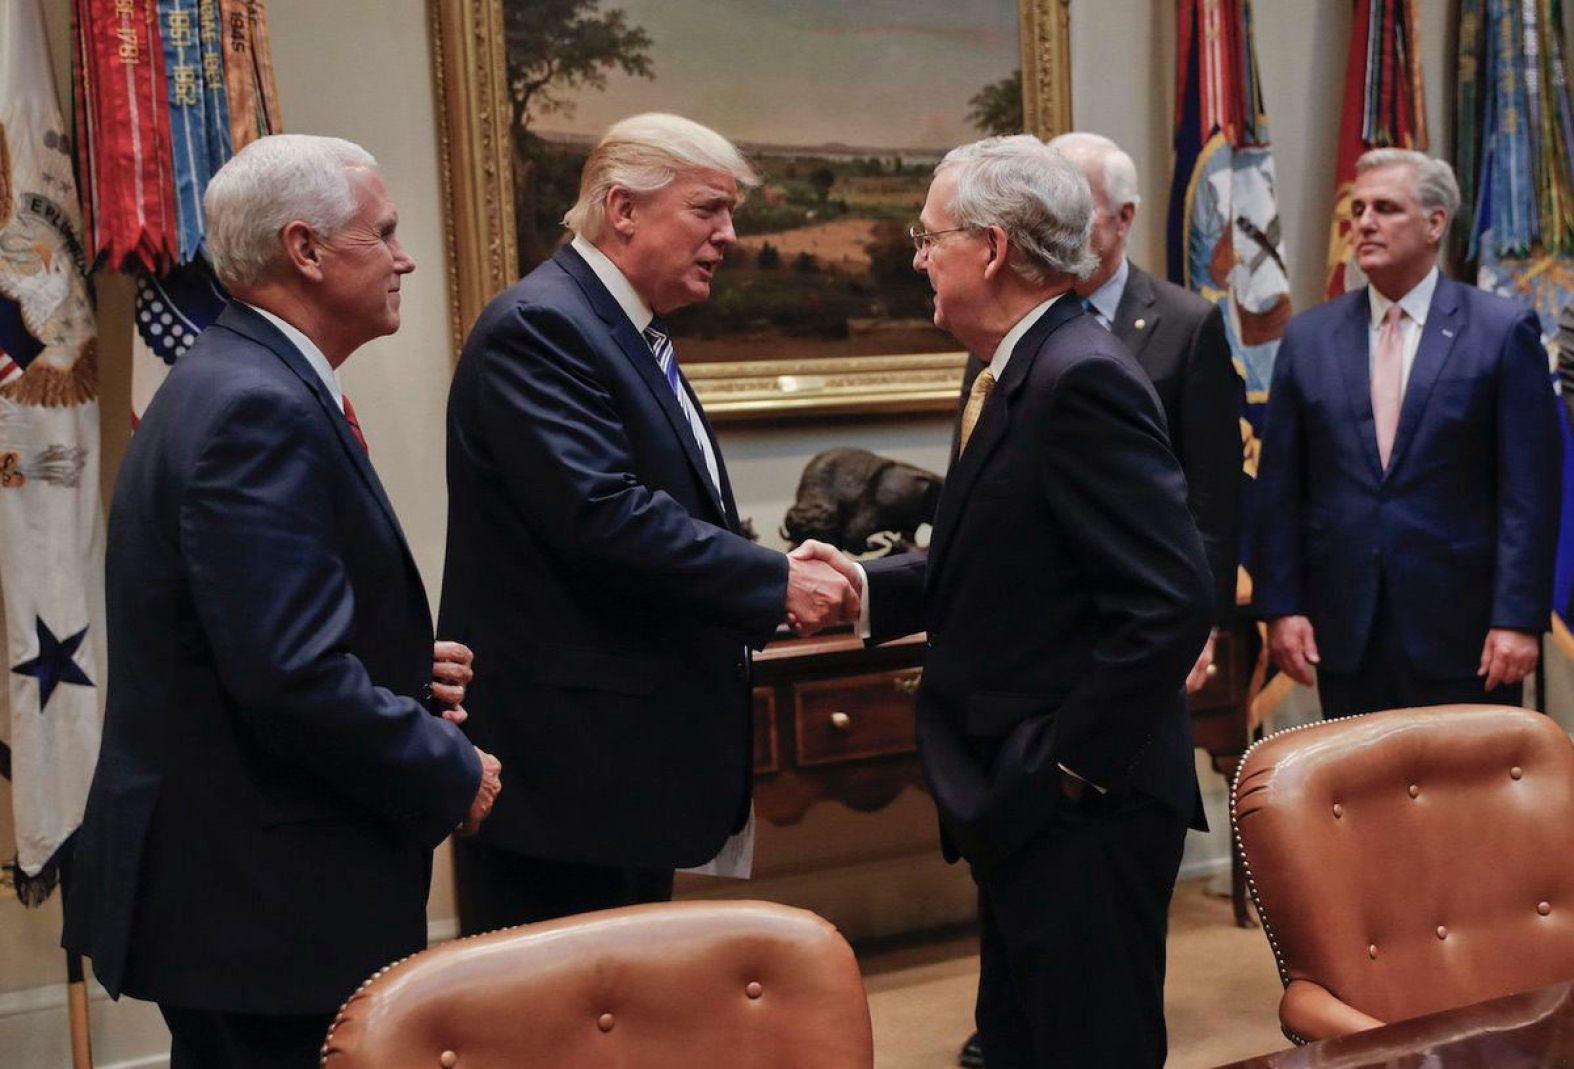 President Donald Trump shakes hands with Senate Majority Leader Mitch McConnell of Ky., center, before the start of a meeting with House and Senate Leadership in the Roosevelt Room of the White House in Washington, Tuesday, June 6, 2017. (AP Photo/Pablo Martinez Monsivais)